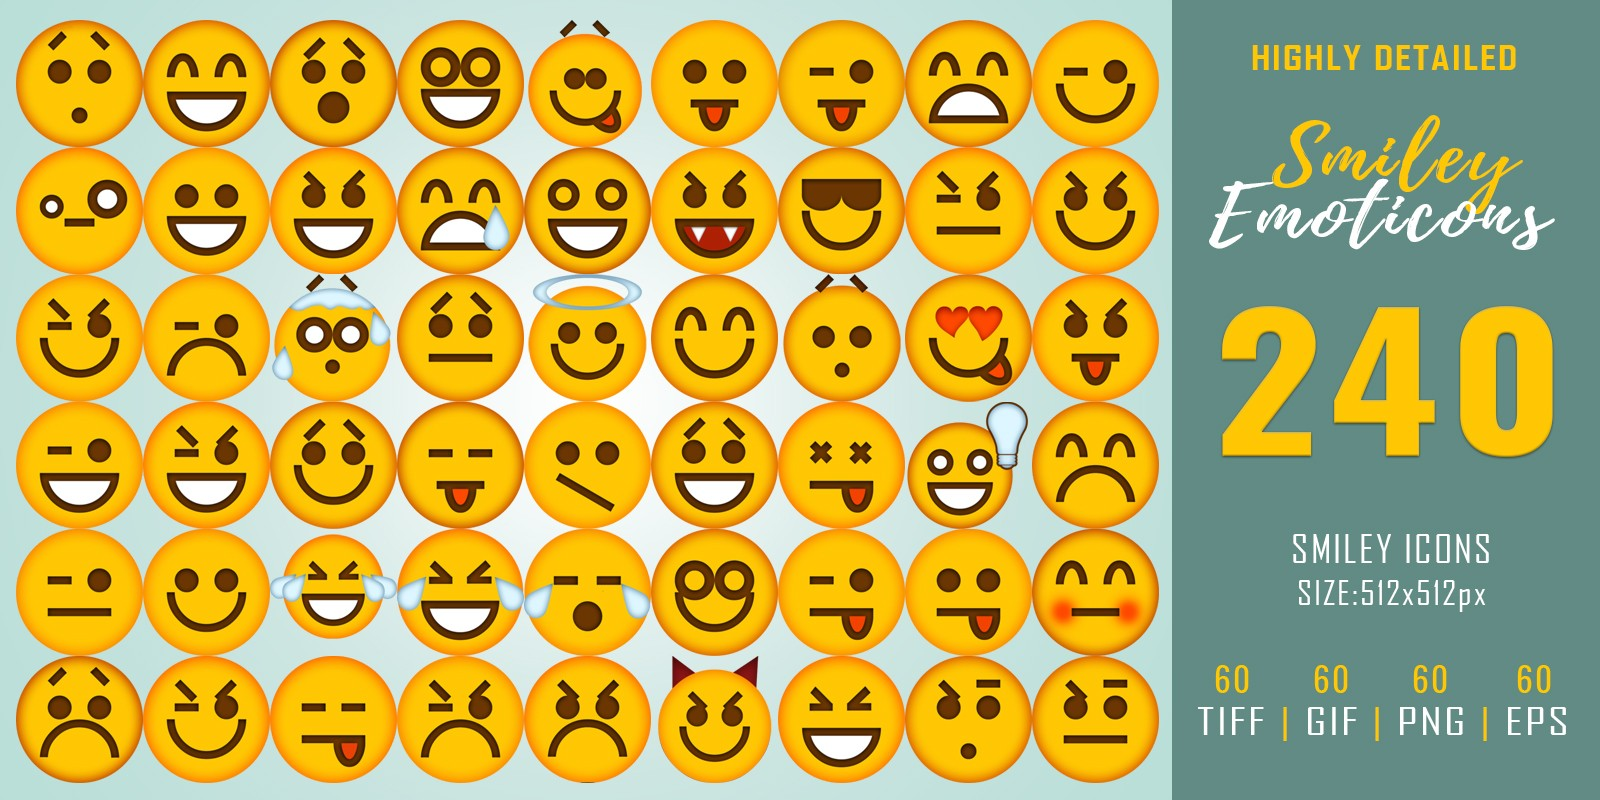 240 Smiley Emoticons - Icon Pack